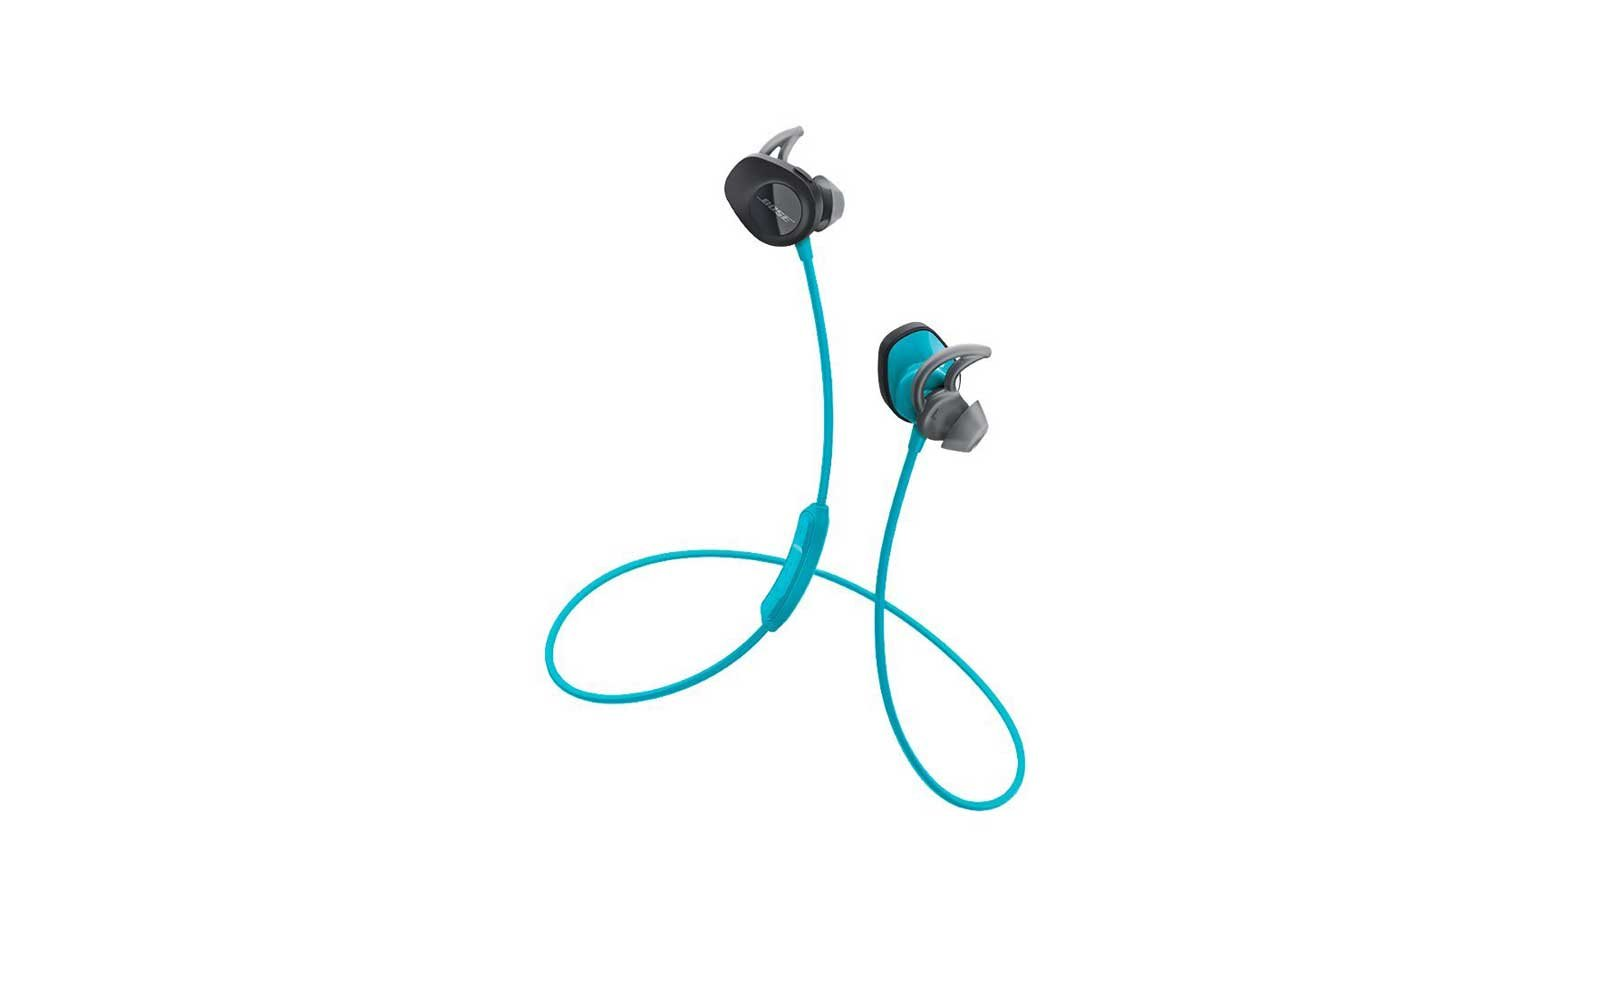 Headphones: Bose SoundSport Wireless Headphones